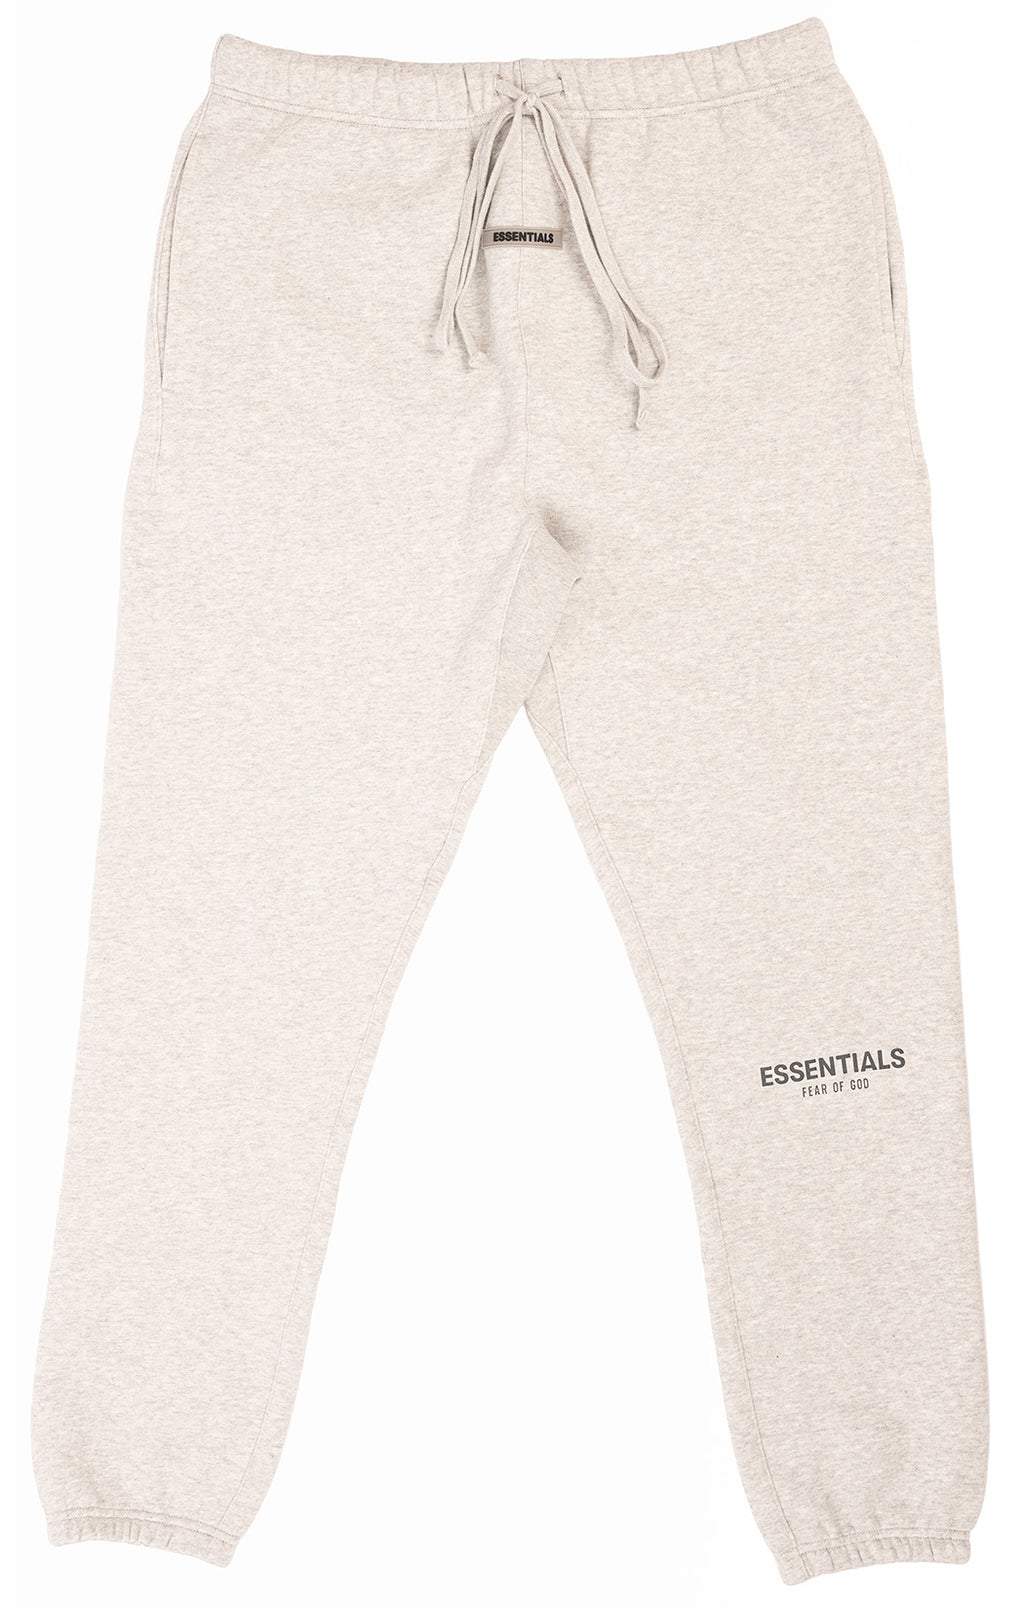 FEAR OF GOD ESSENTIALS  Sweatpants  Size: Large